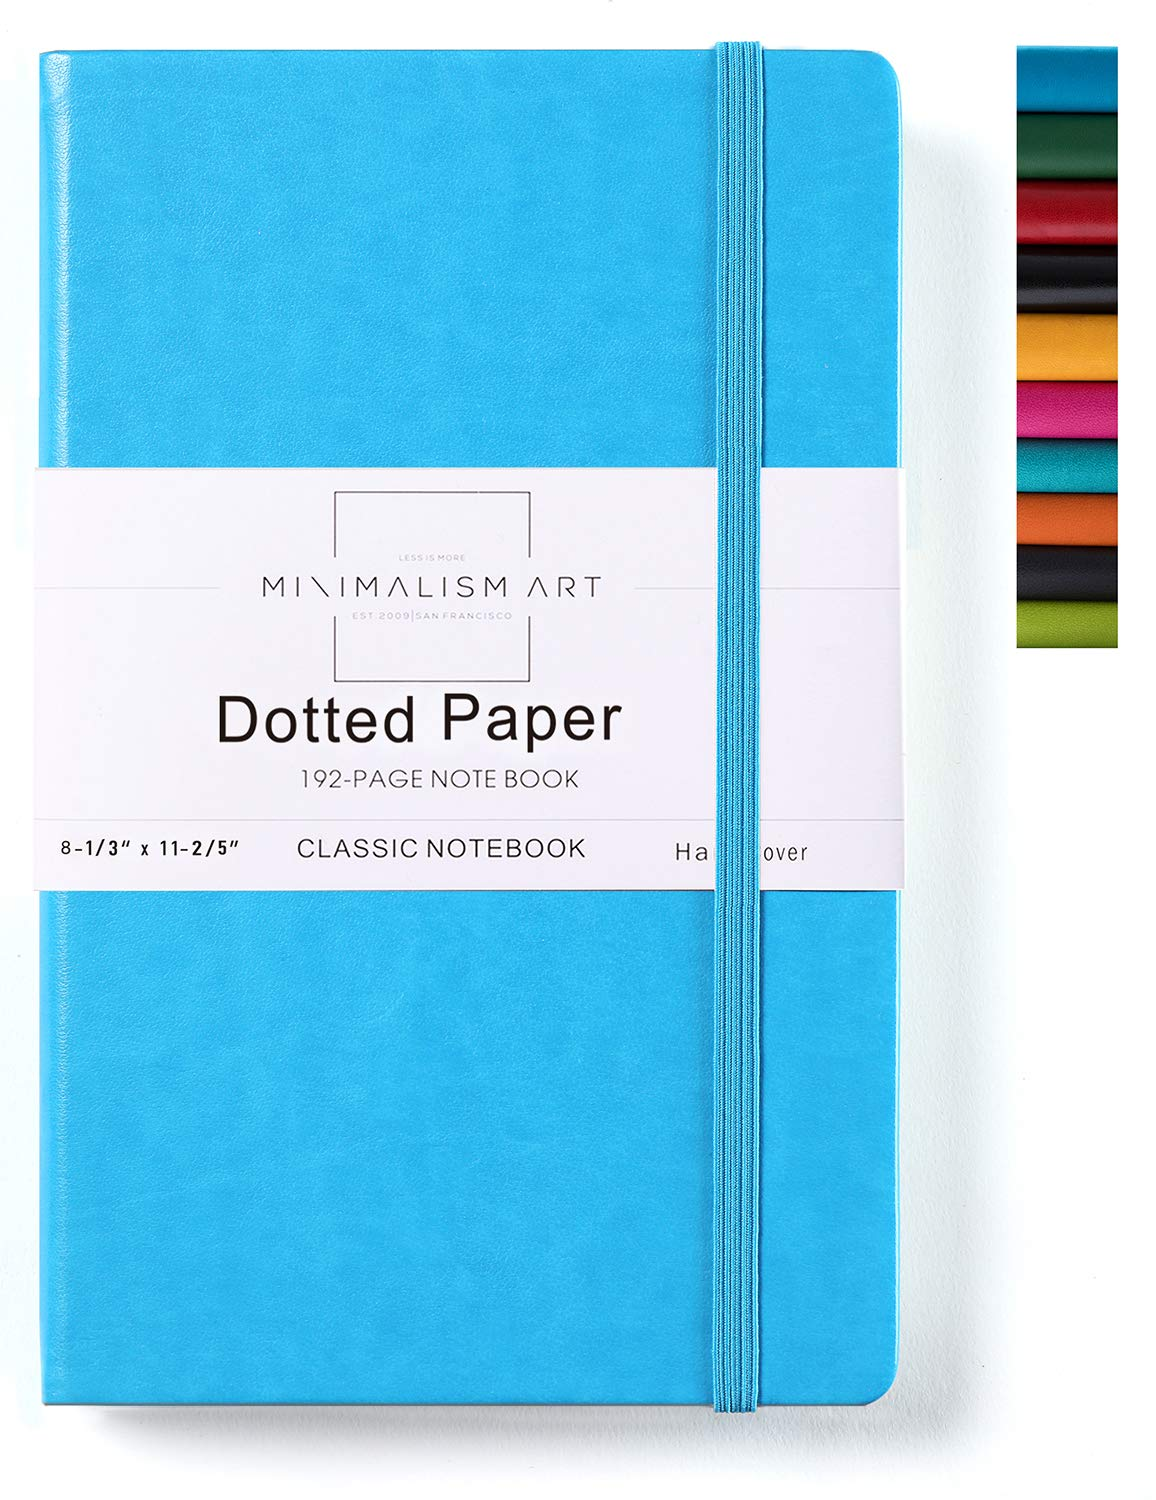 Minimalism Art, Classic Notebook Journal, A4 Size 8.3 X 11.4 inches, Blue, Dotted Grid Page, 192 Pages, Hard Cover, Fine PU Leather, Inner Pocket, Quality Paper-100gsm, Designed in San Francisco